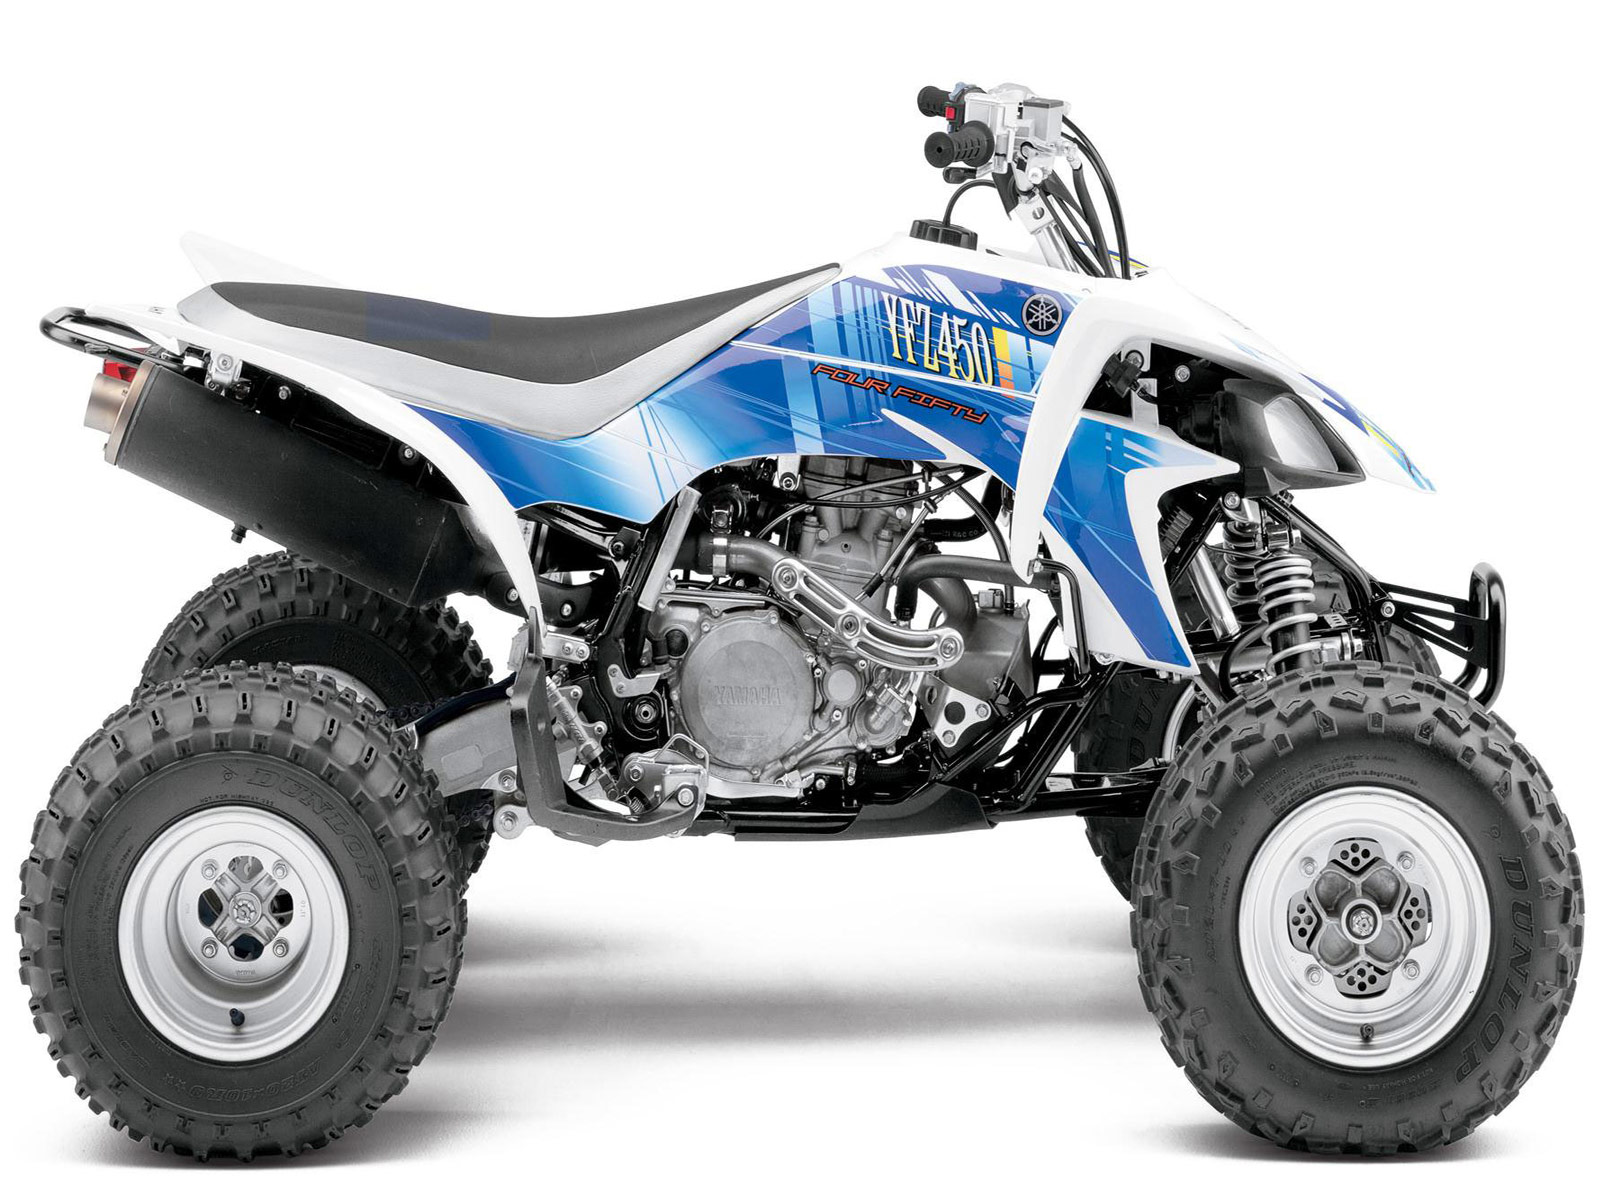 Raptor yfz450 2013 yamaha atv pictures specifications for Yamaha raptor oil type